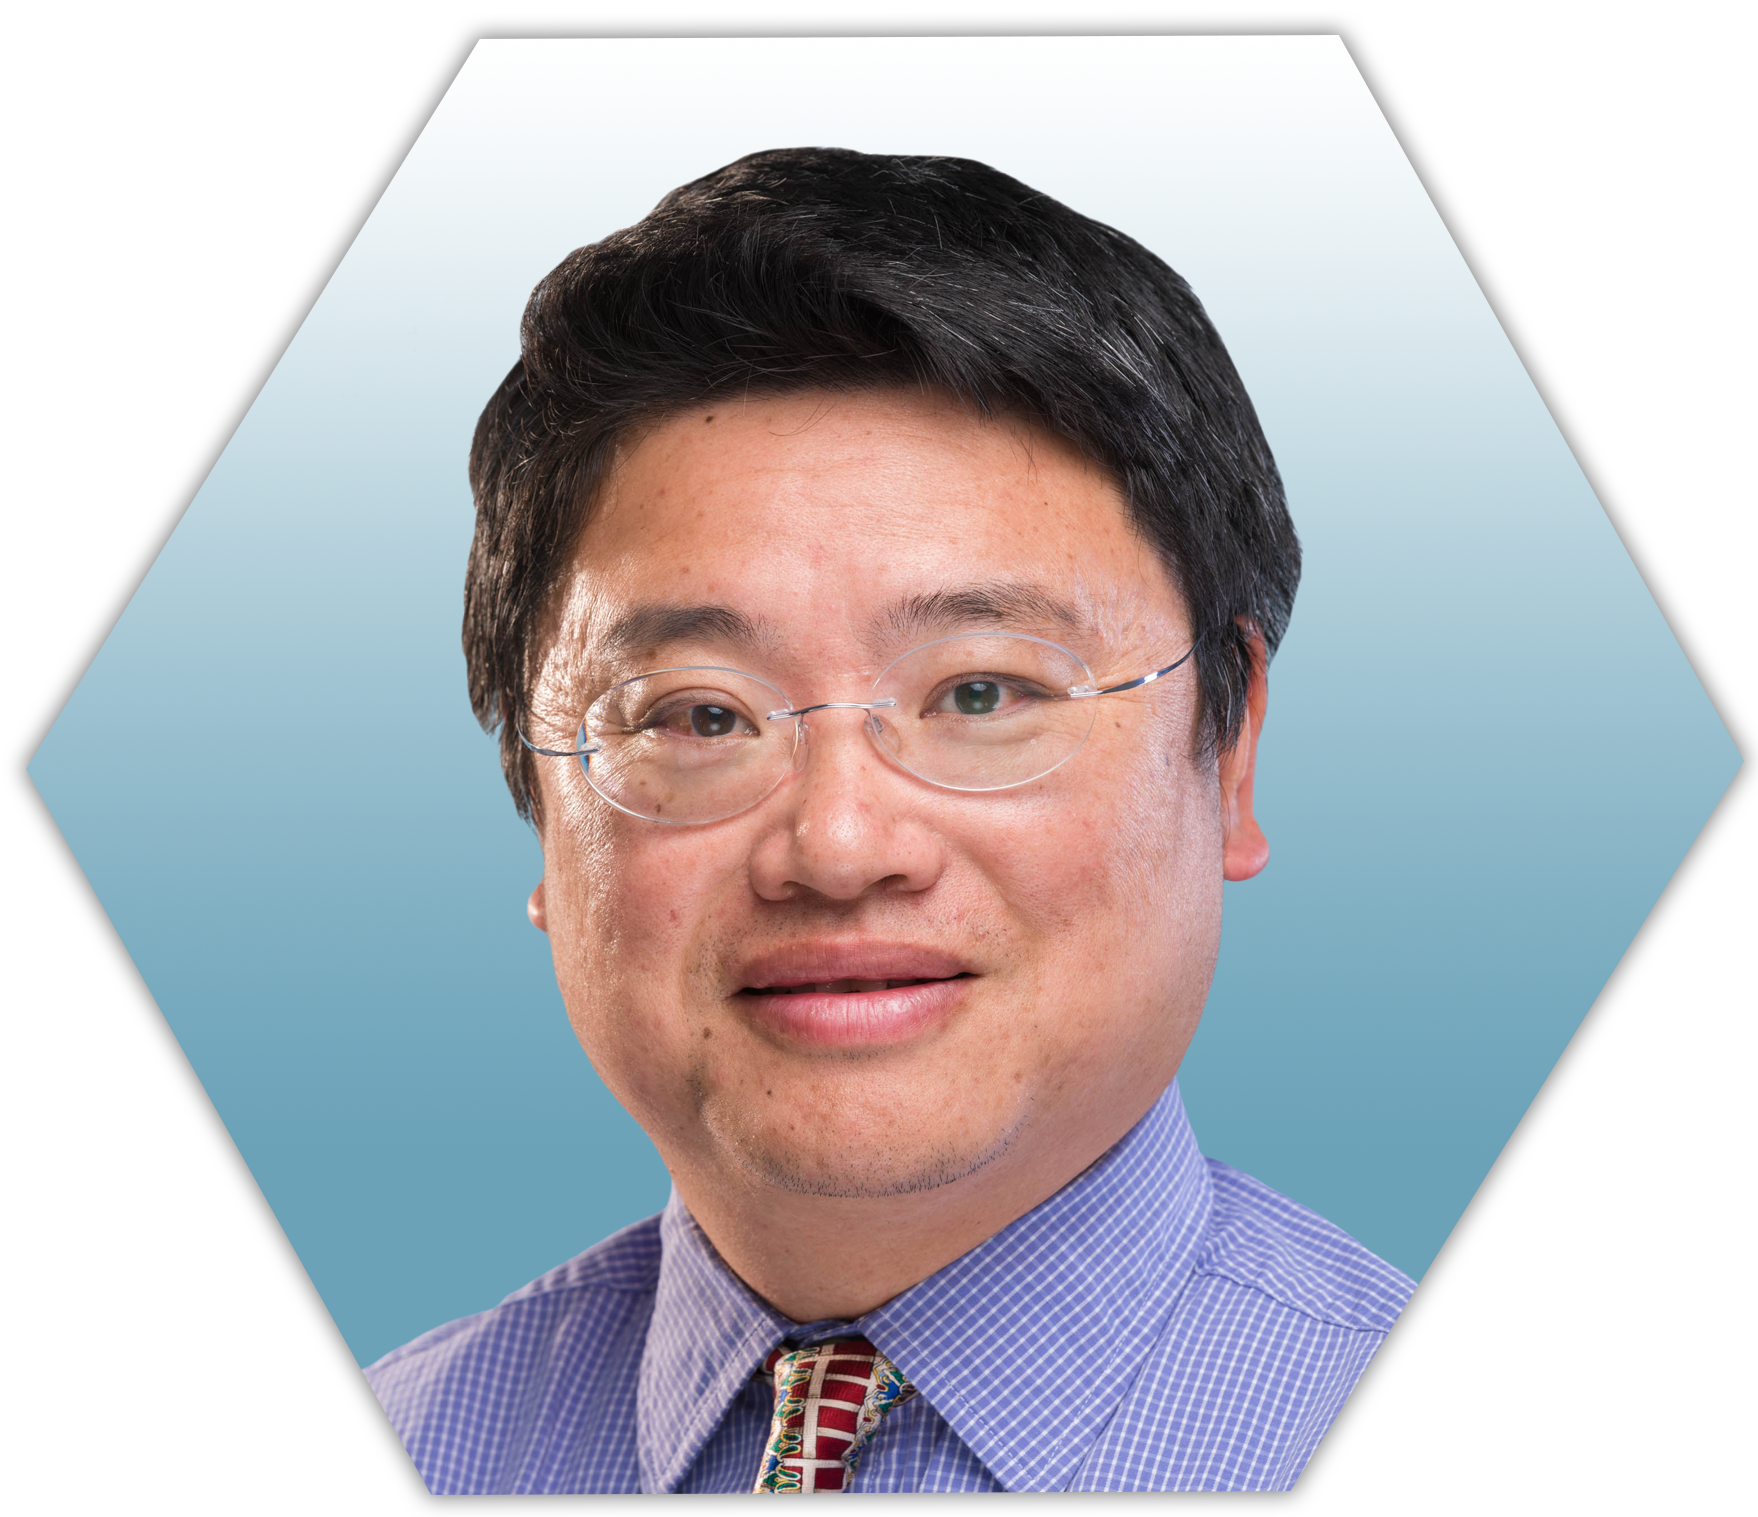 Yun%20Zhao,%20MD,%20Director%20of%20Biopharma%20Services Leadership Team